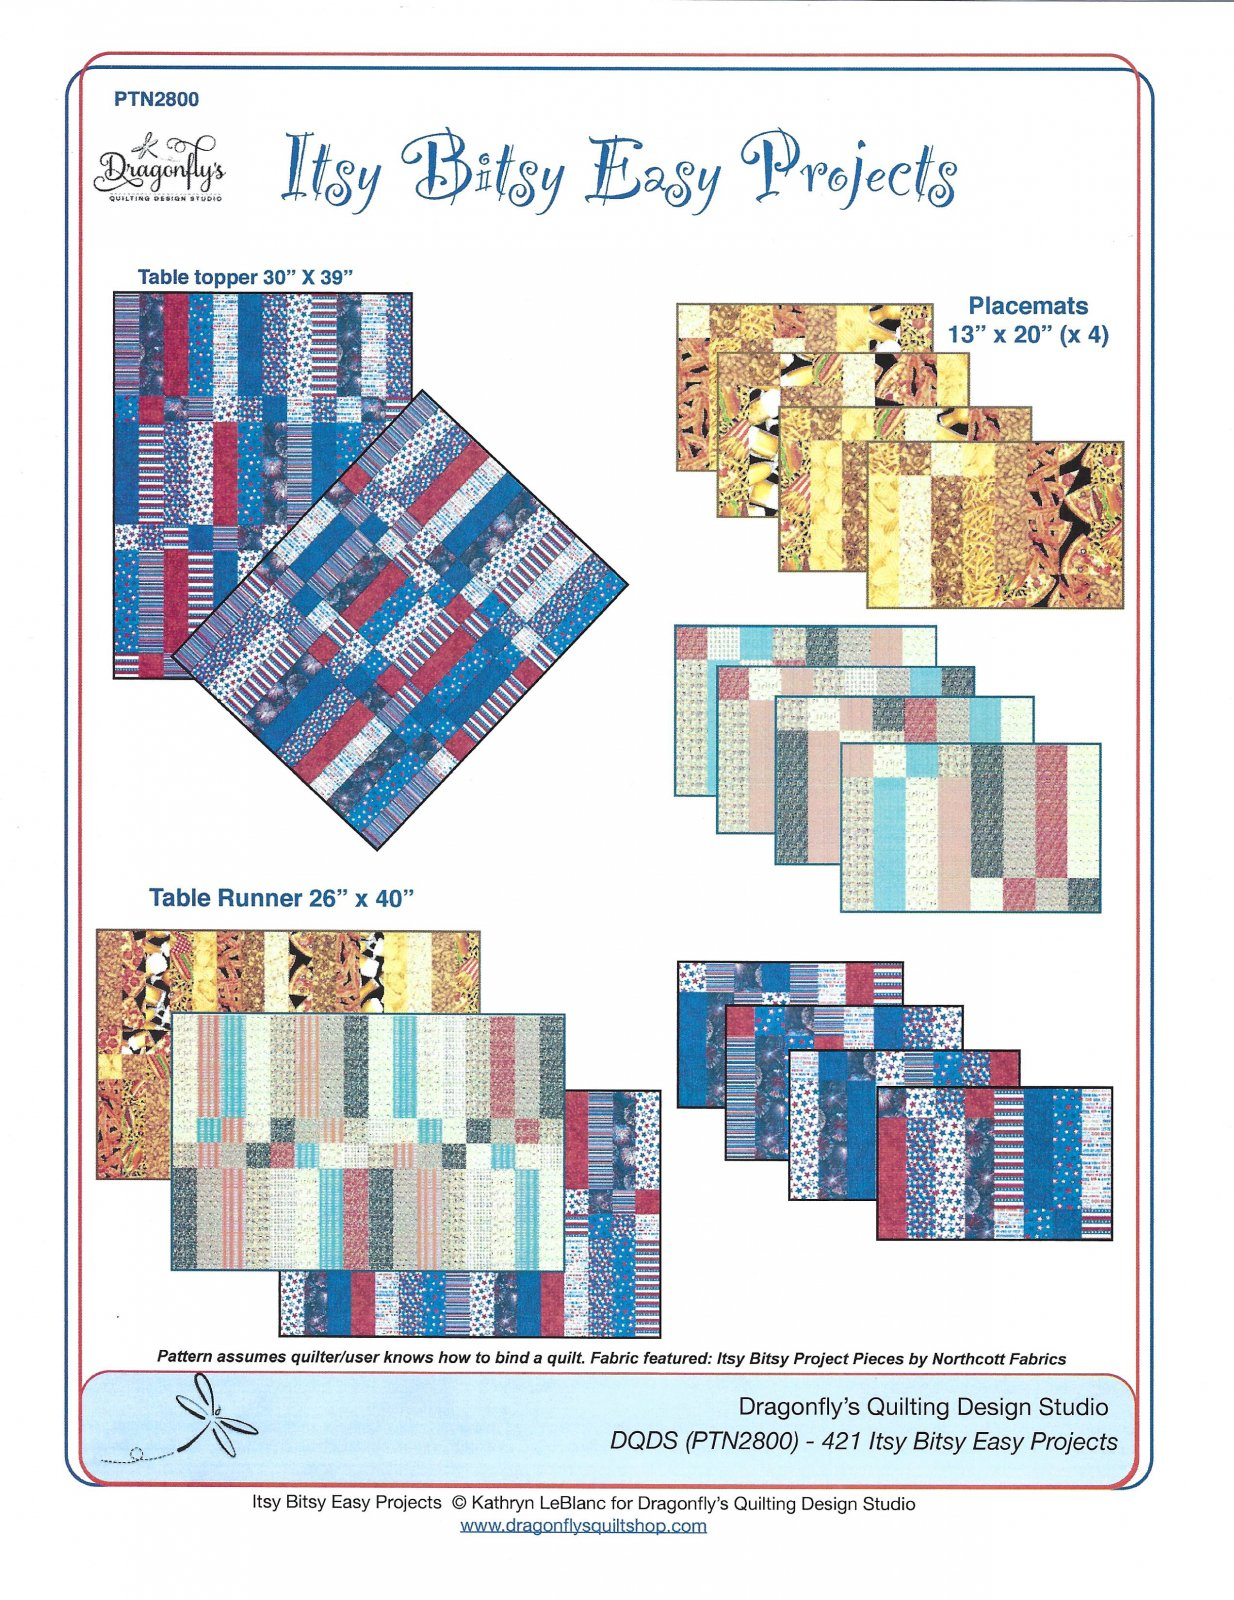 Itsy Bitsy Easy Projects pattern